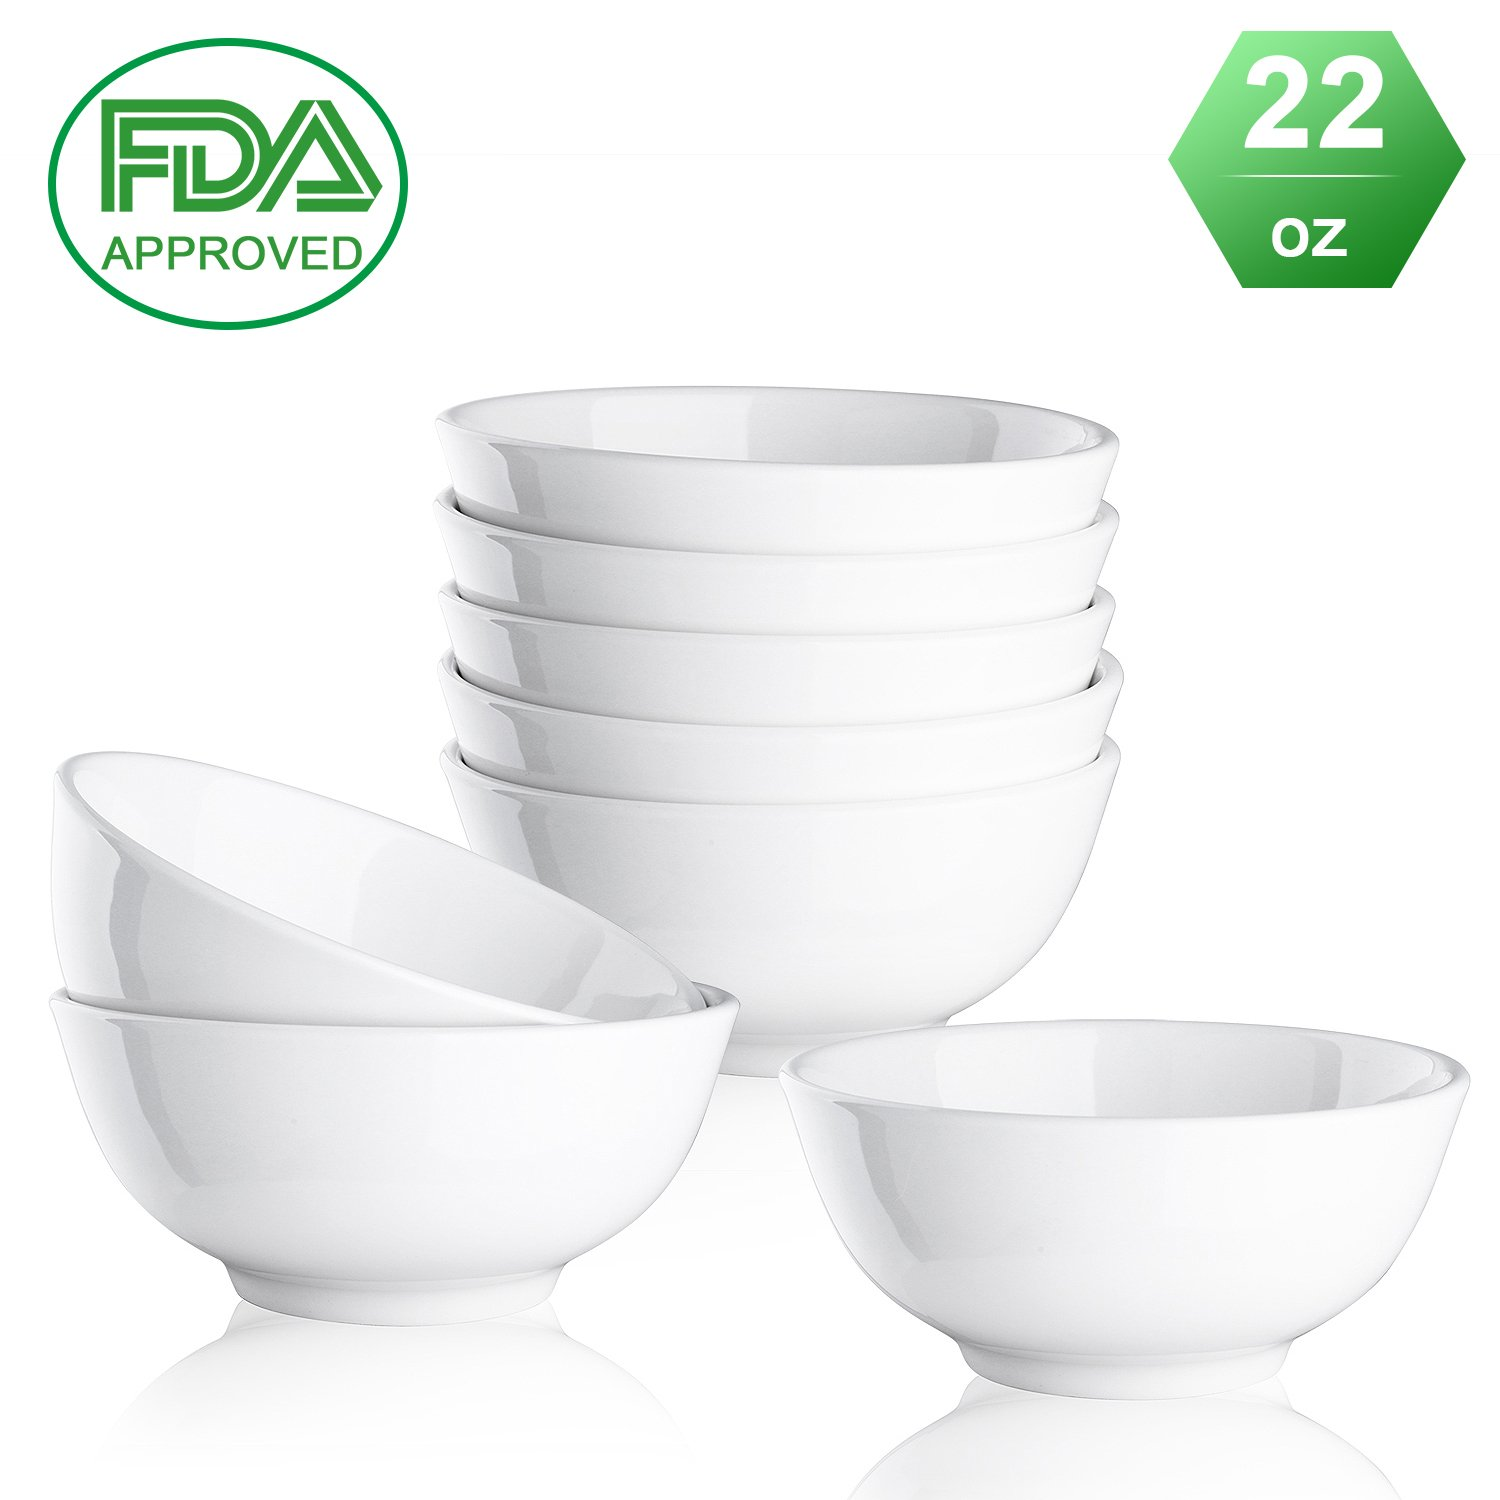 Porcelain bowls Ceramic bowl - 22 Ounce for Cereal, Salad and Desserts, White, Set of 8 Mandydov